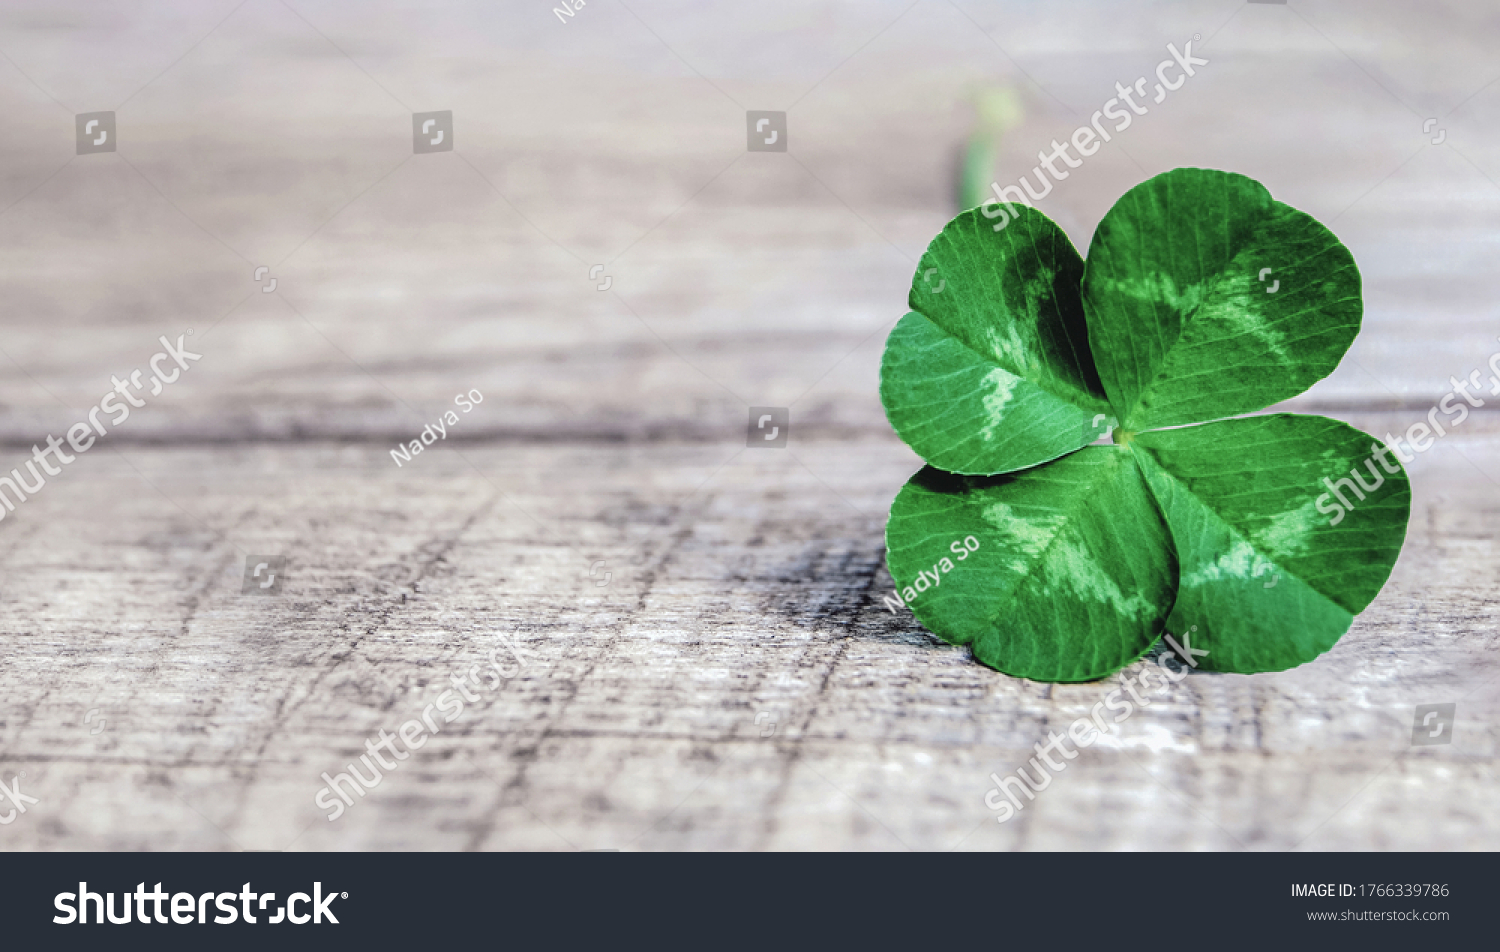 four-leaf clover on gray background, authentic green shamrock with four leaves on old grey wood #1766339786